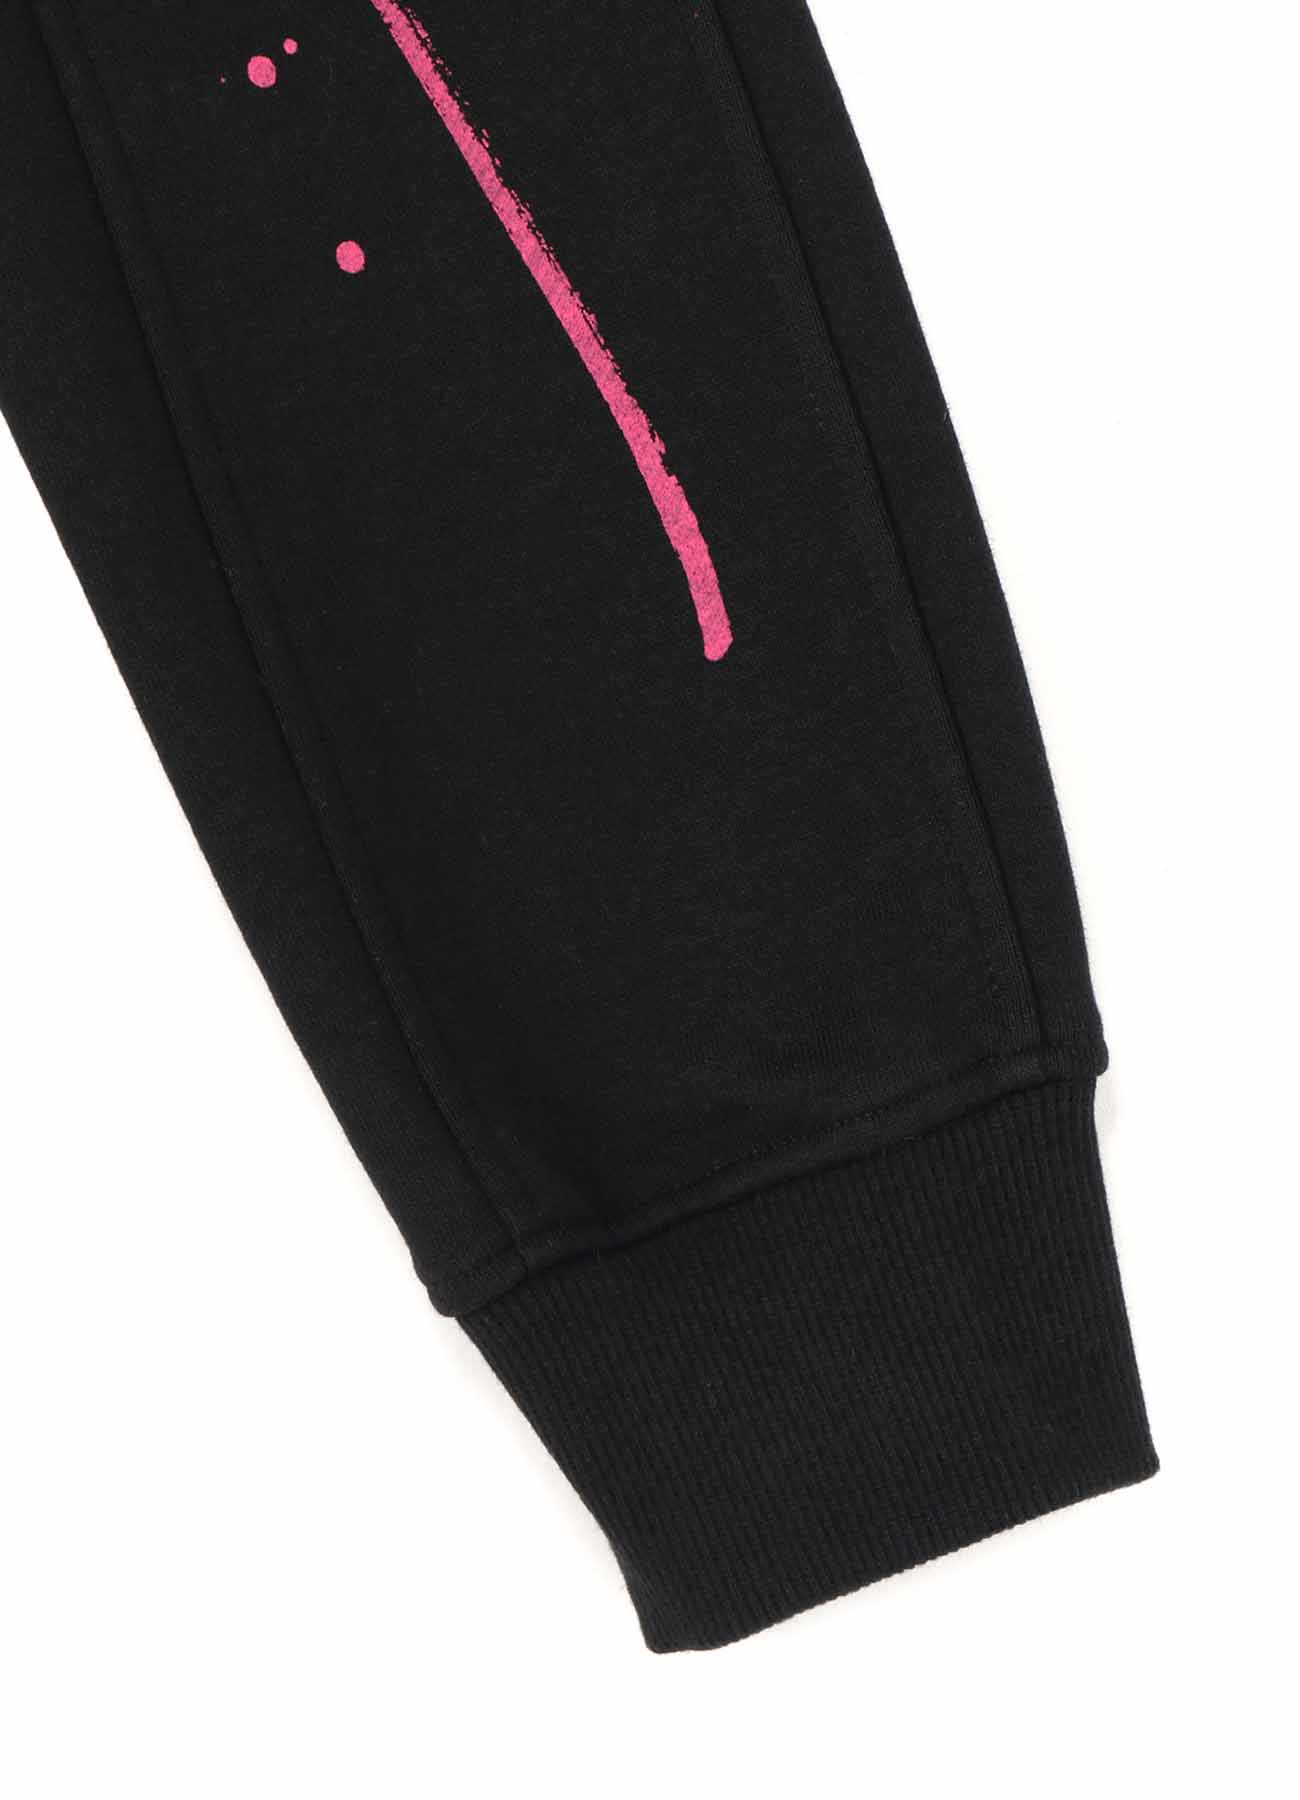 French Terry Stitch Work Tears of Pink Hoodie